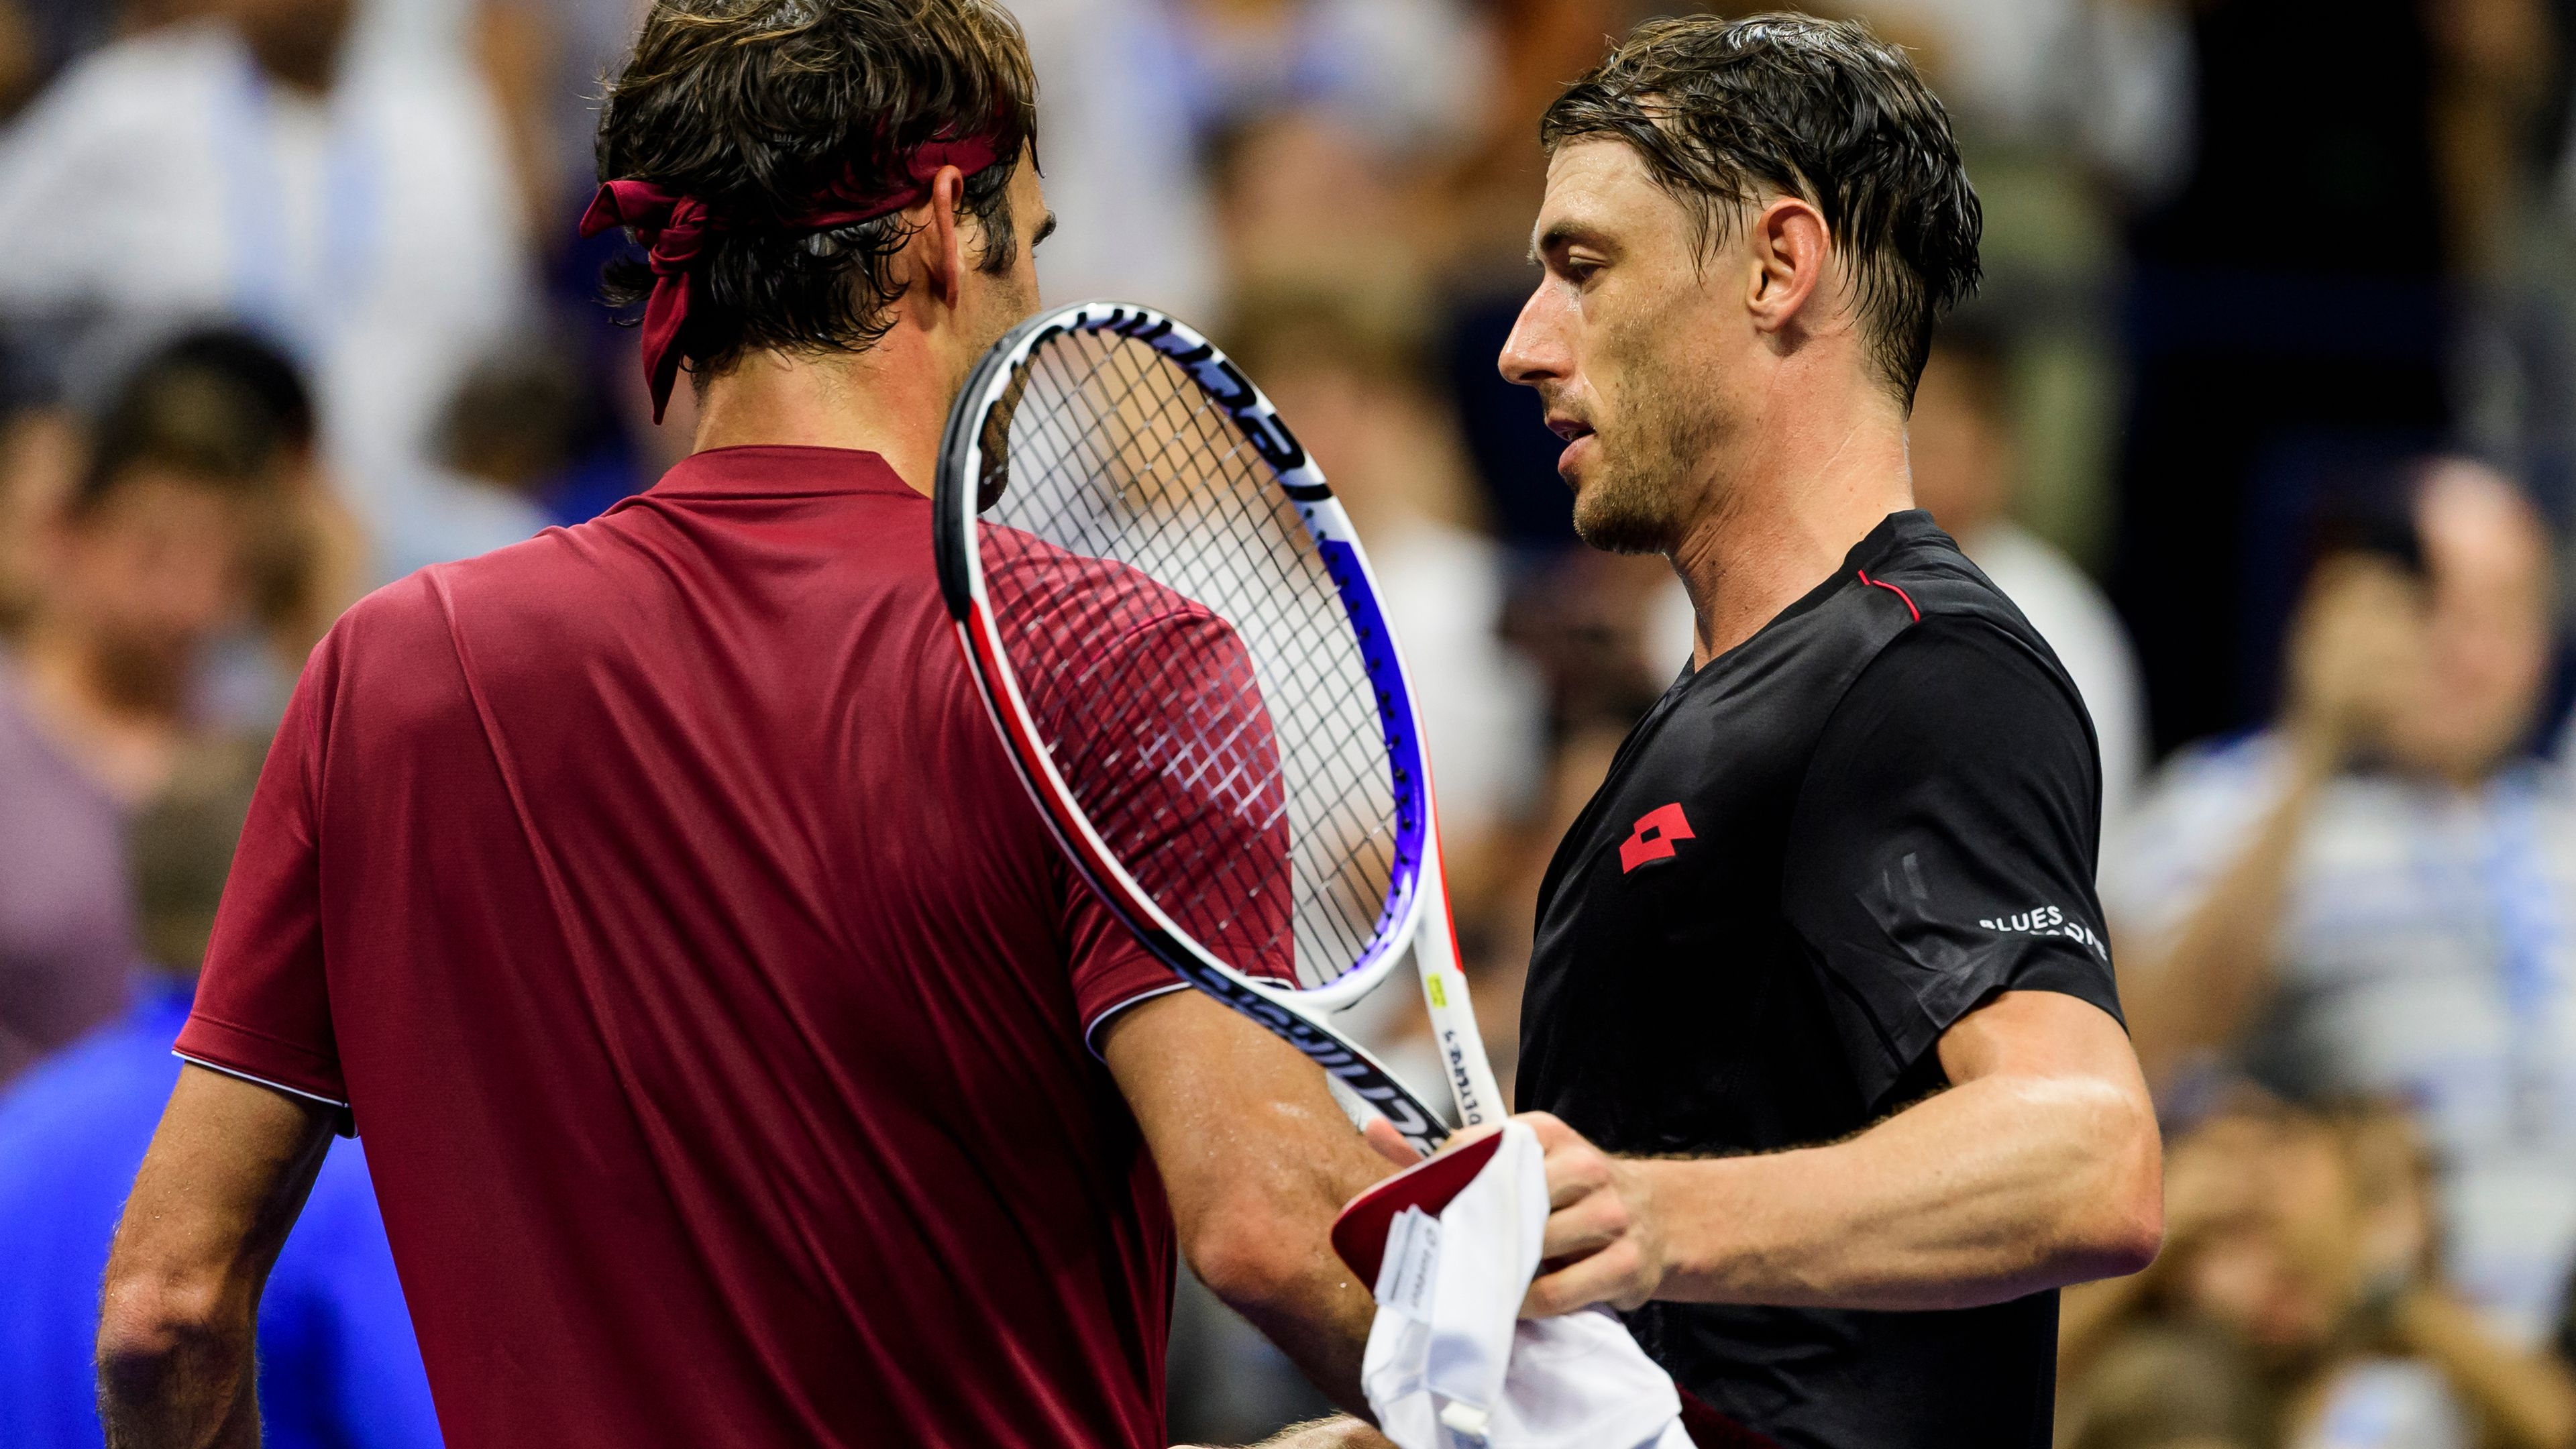 'Not going to take this lying down': The night John Millman won't forget